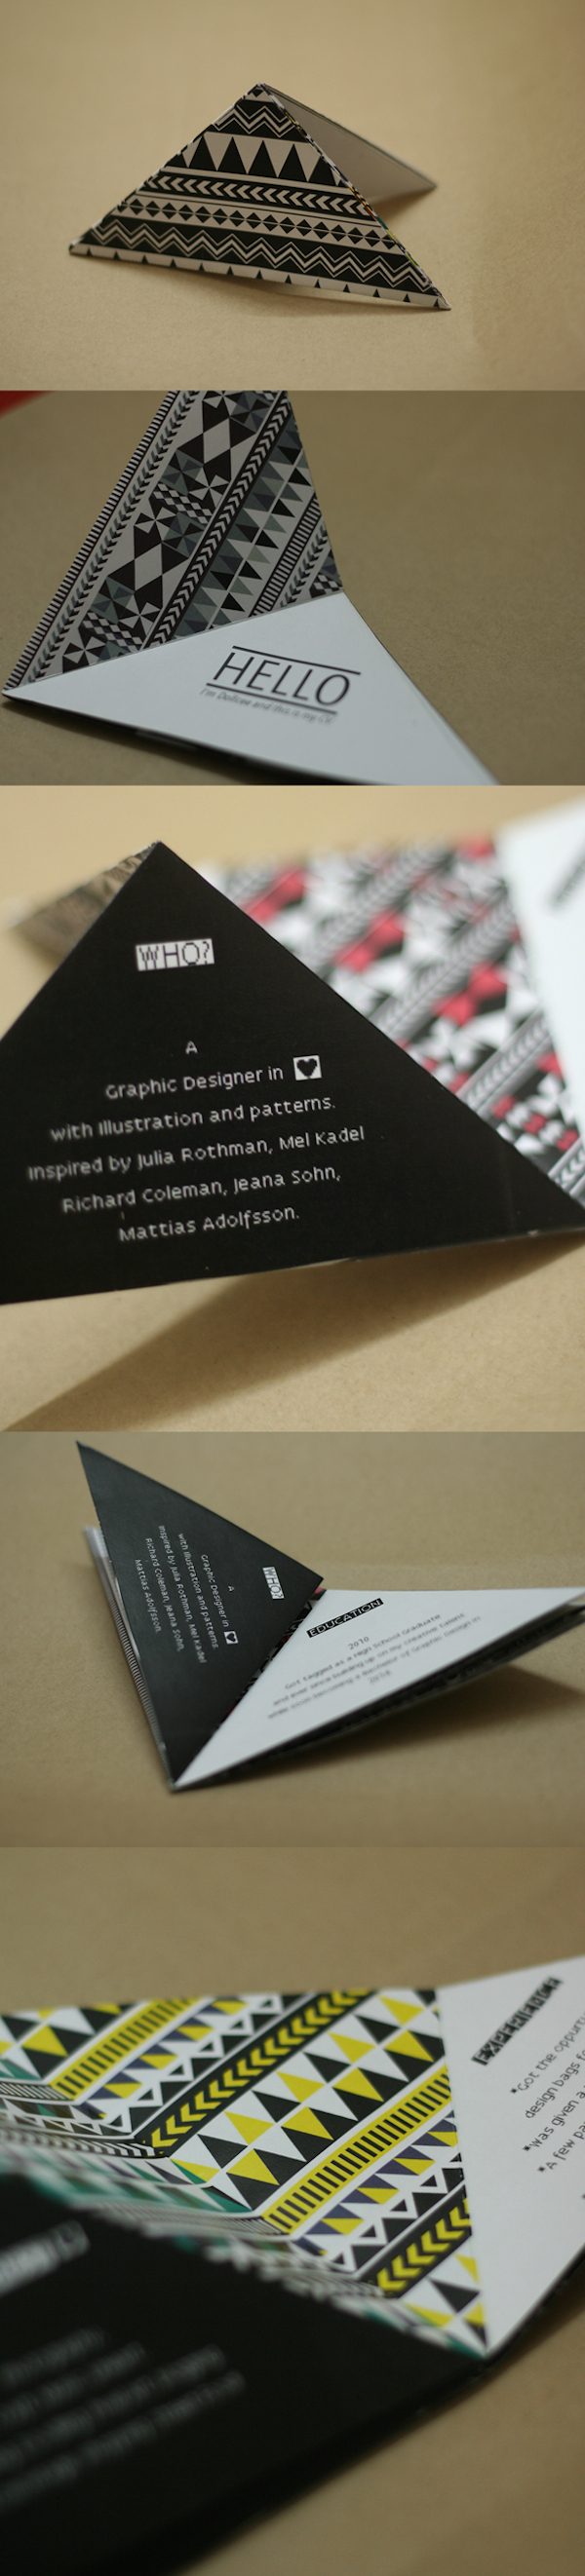 Candice Witpas And Dollcee Khattar: These Two Resumes Are Compact,  Foldable, And Innovative. The Novelty Of Being Able To Take A Resume To Go,  And In Fact, ...  Resume On Cardstock